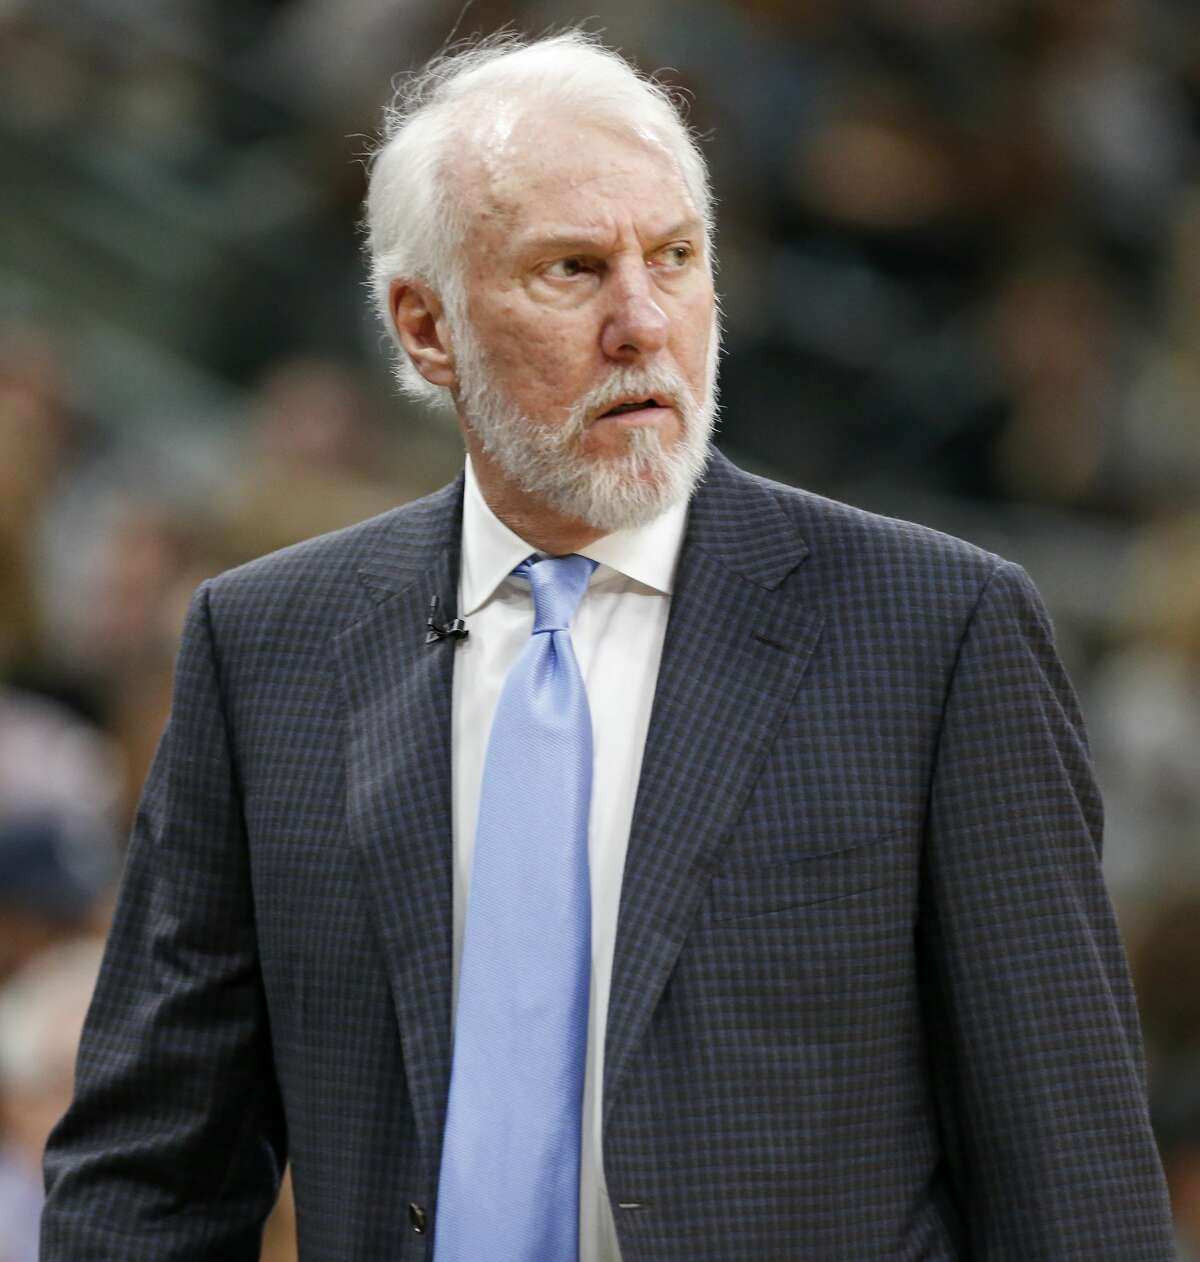 San Antonio Spurs head coach Gregg Popovich watches first half action in Game 4 of the Western Conference Finals against the Golden State Warriors held Monday May 22, 2017 at the AT&T Center.